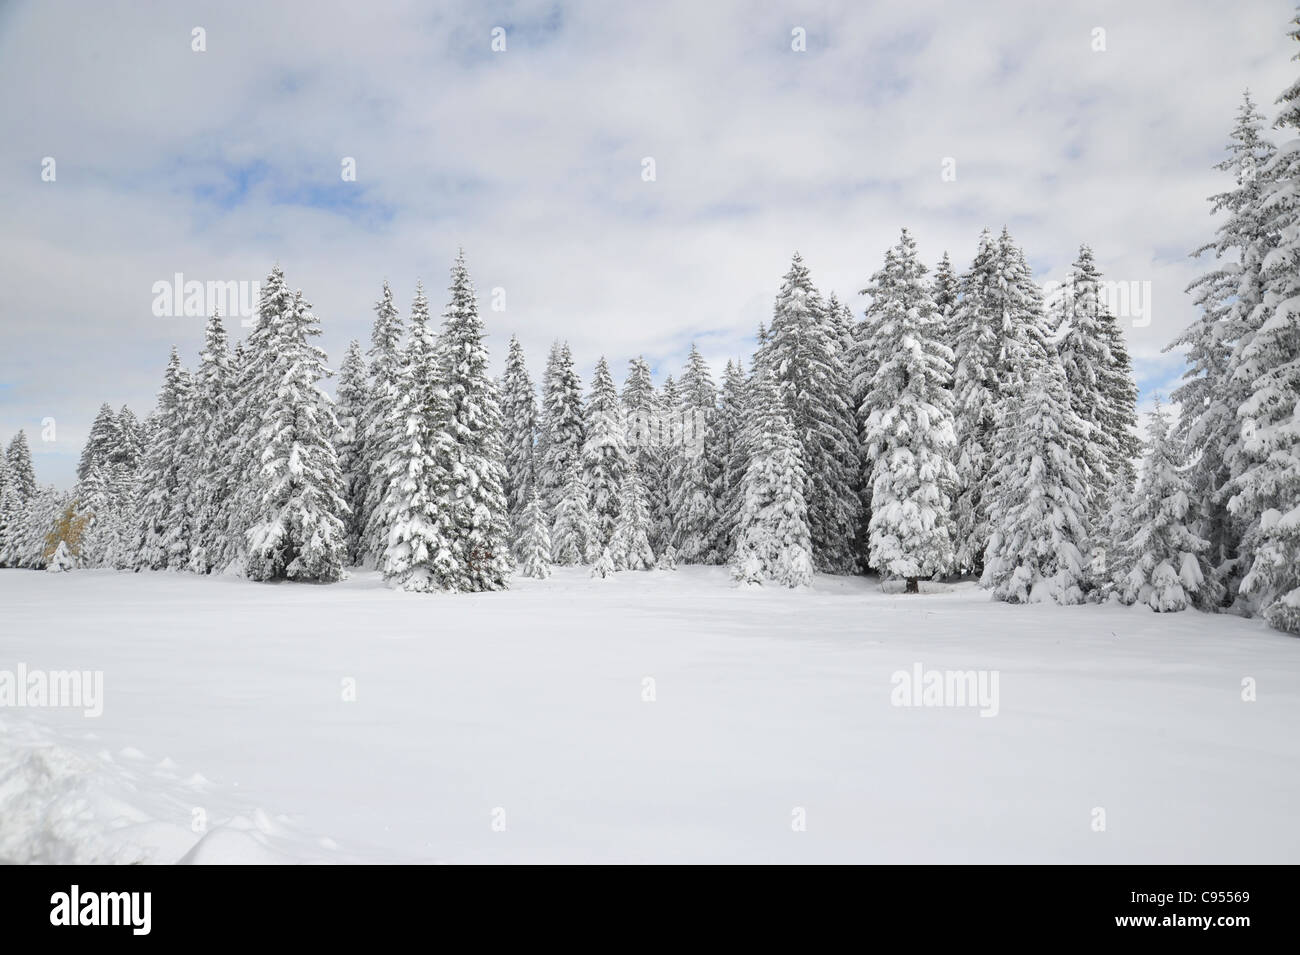 Chur switzerland winter stock photos chur switzerland - Images of pine trees in snow ...